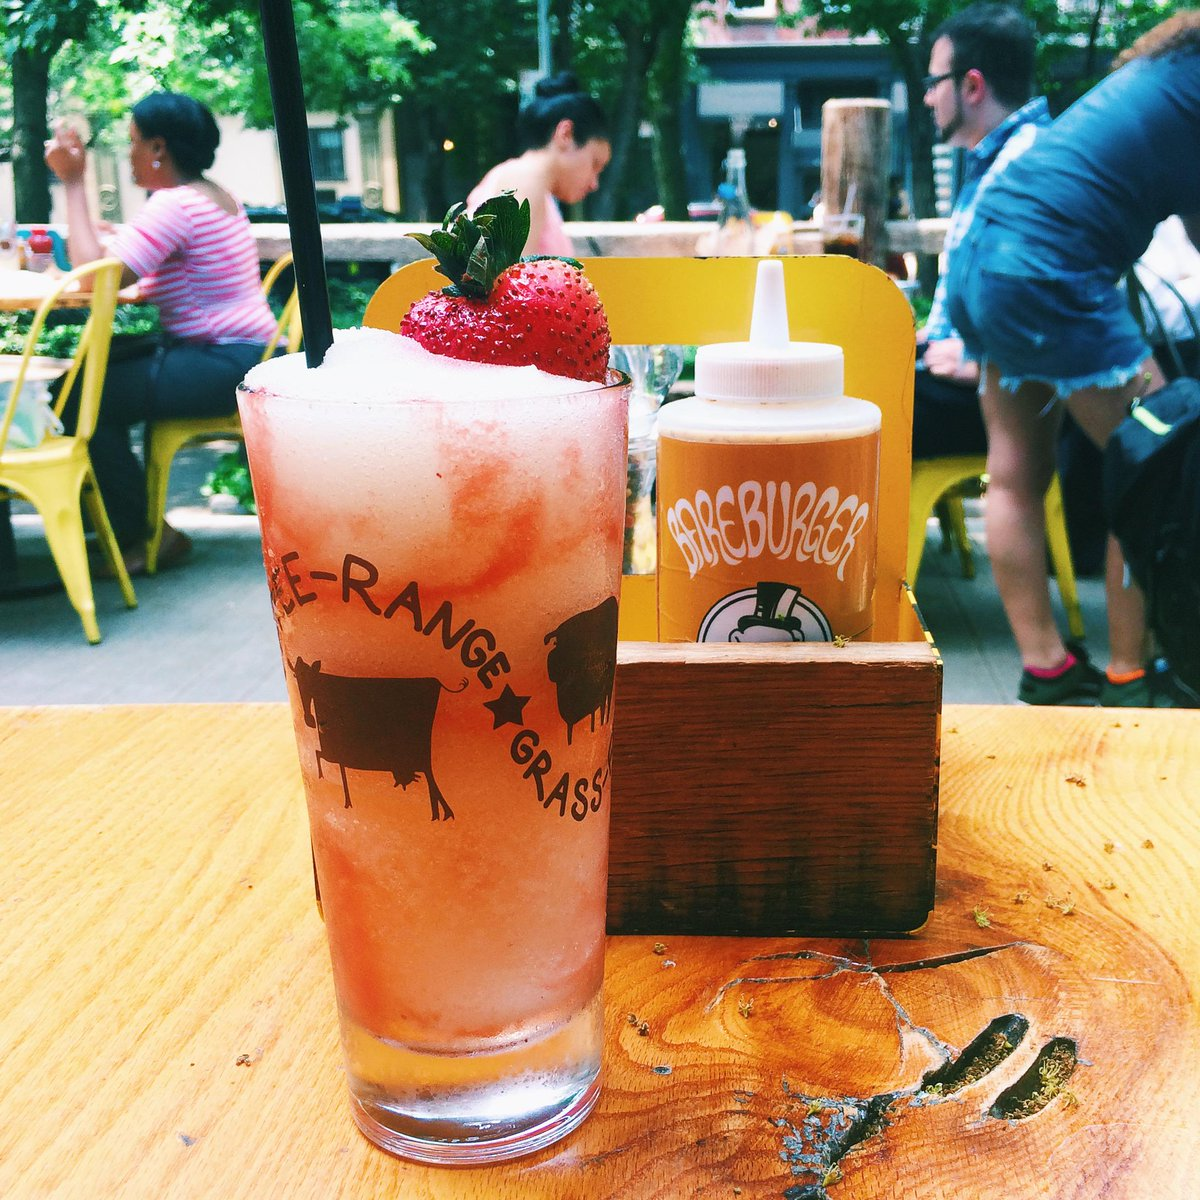 Celebrate #NationalCheeseburgerDay @bareburger with one of their yummy #KelvinSlush #cocktails http://t.co/xBCYdjOaB3 http://t.co/xfnFsyoNXF